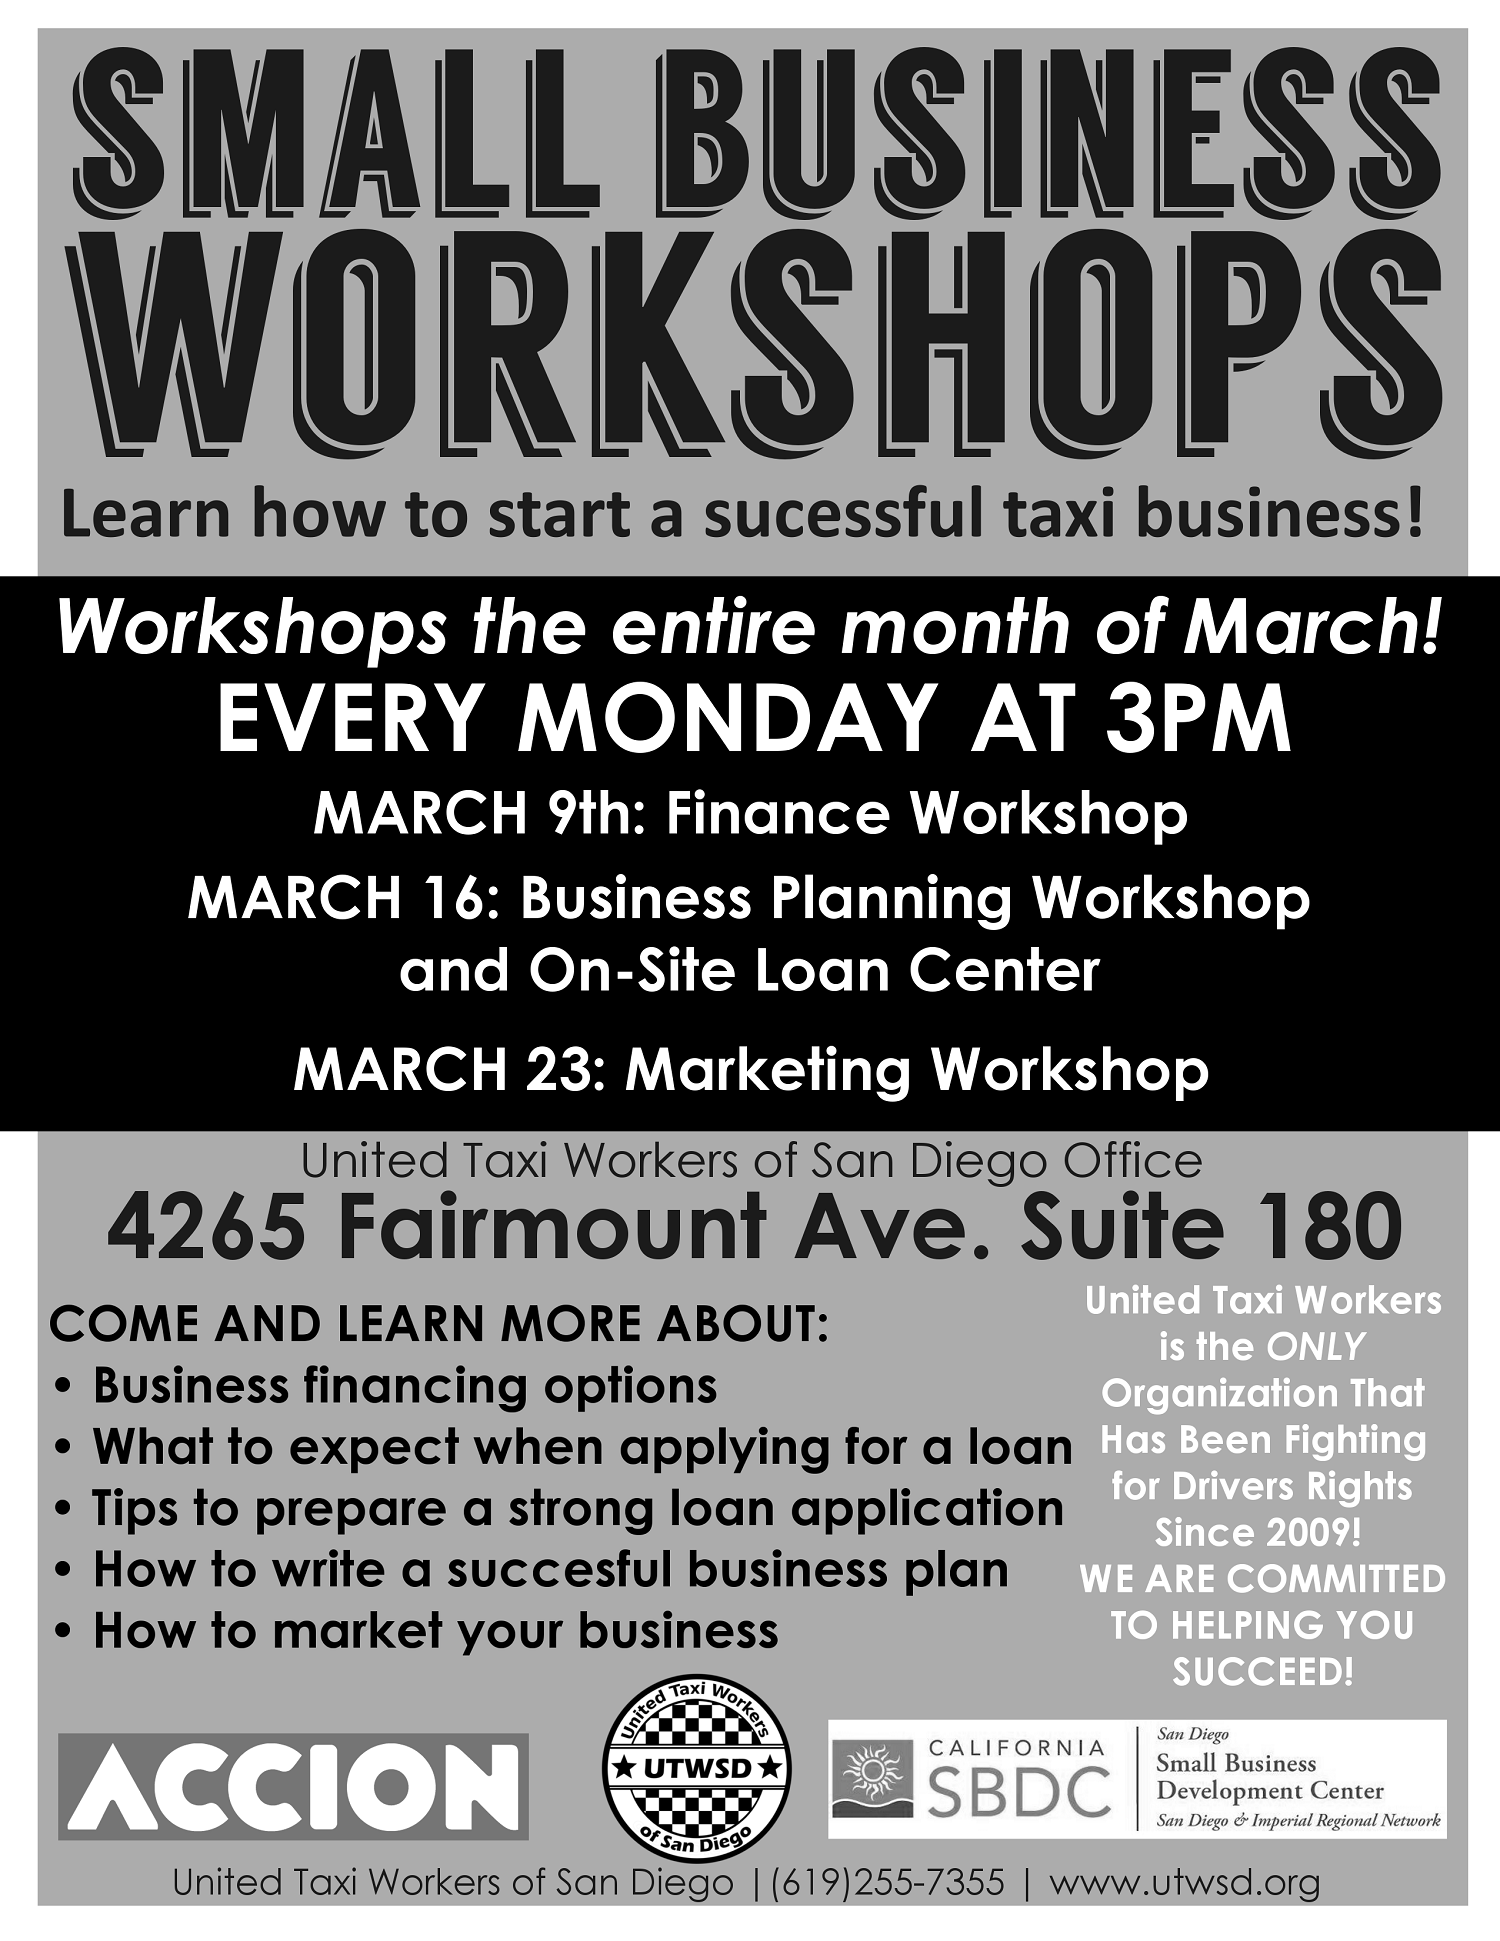 SMALL BUSINESS WORKSHOPS FOR DRIVERS!